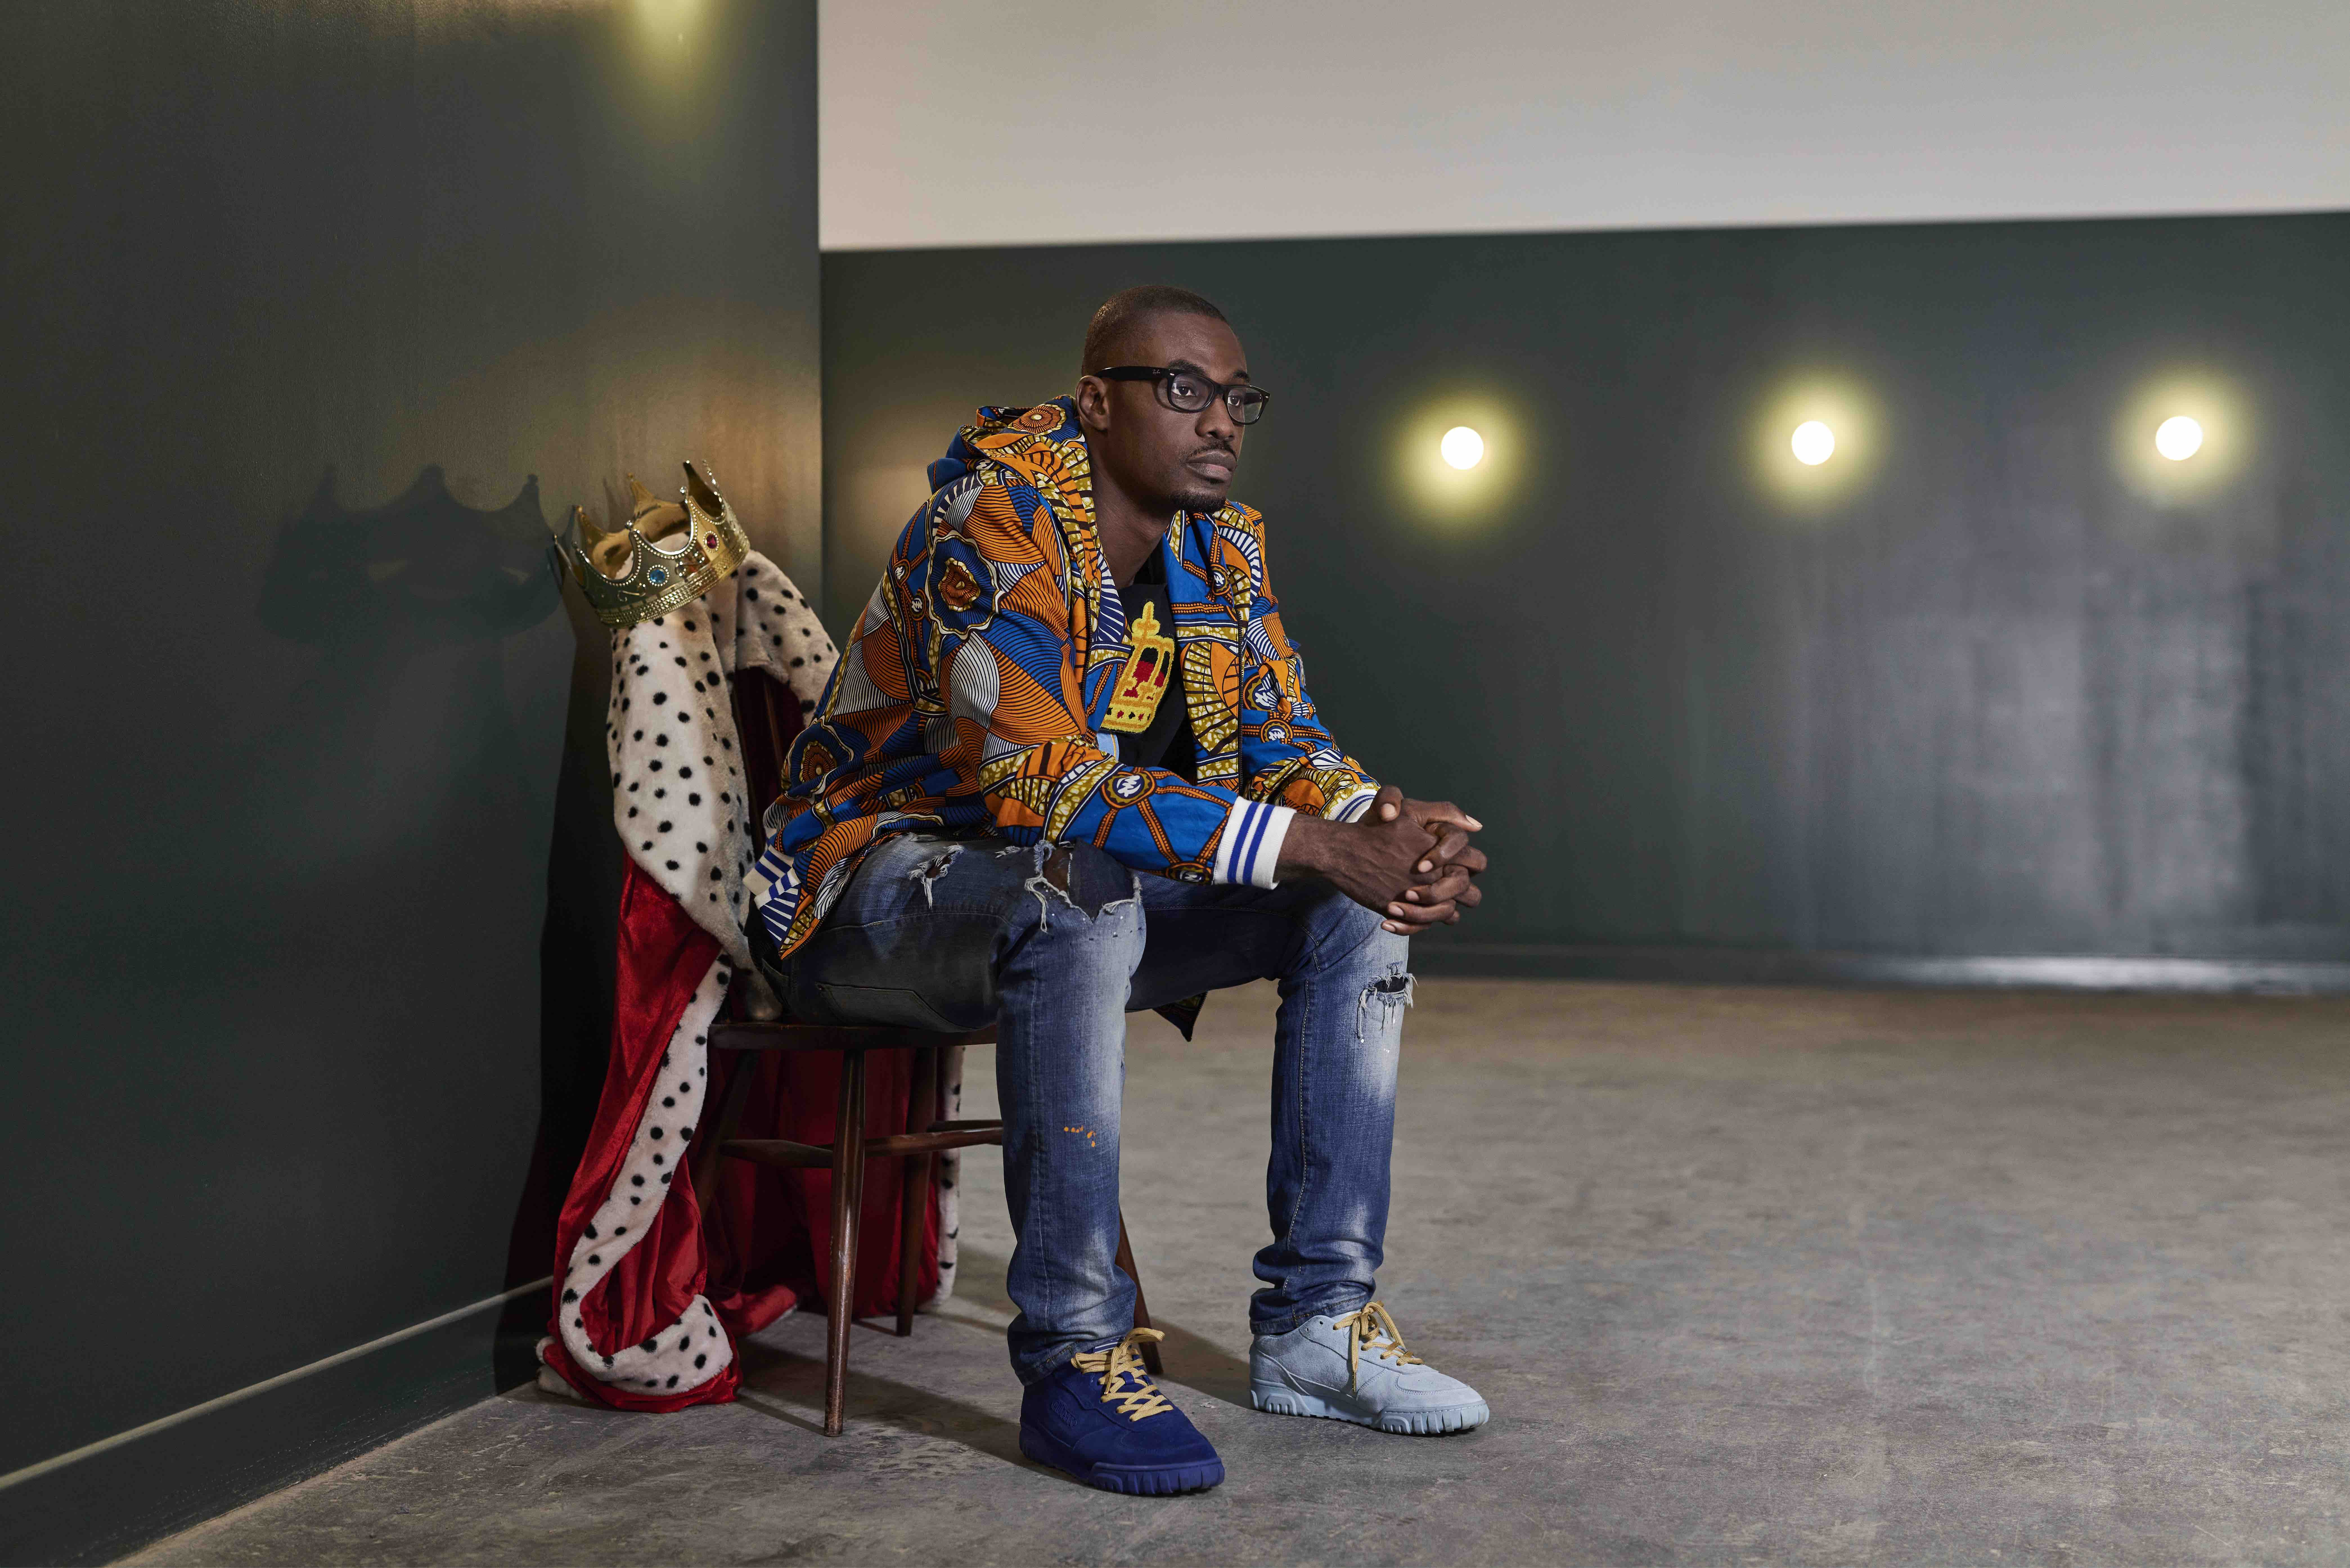 Franklin Boateng, the King of Trainers